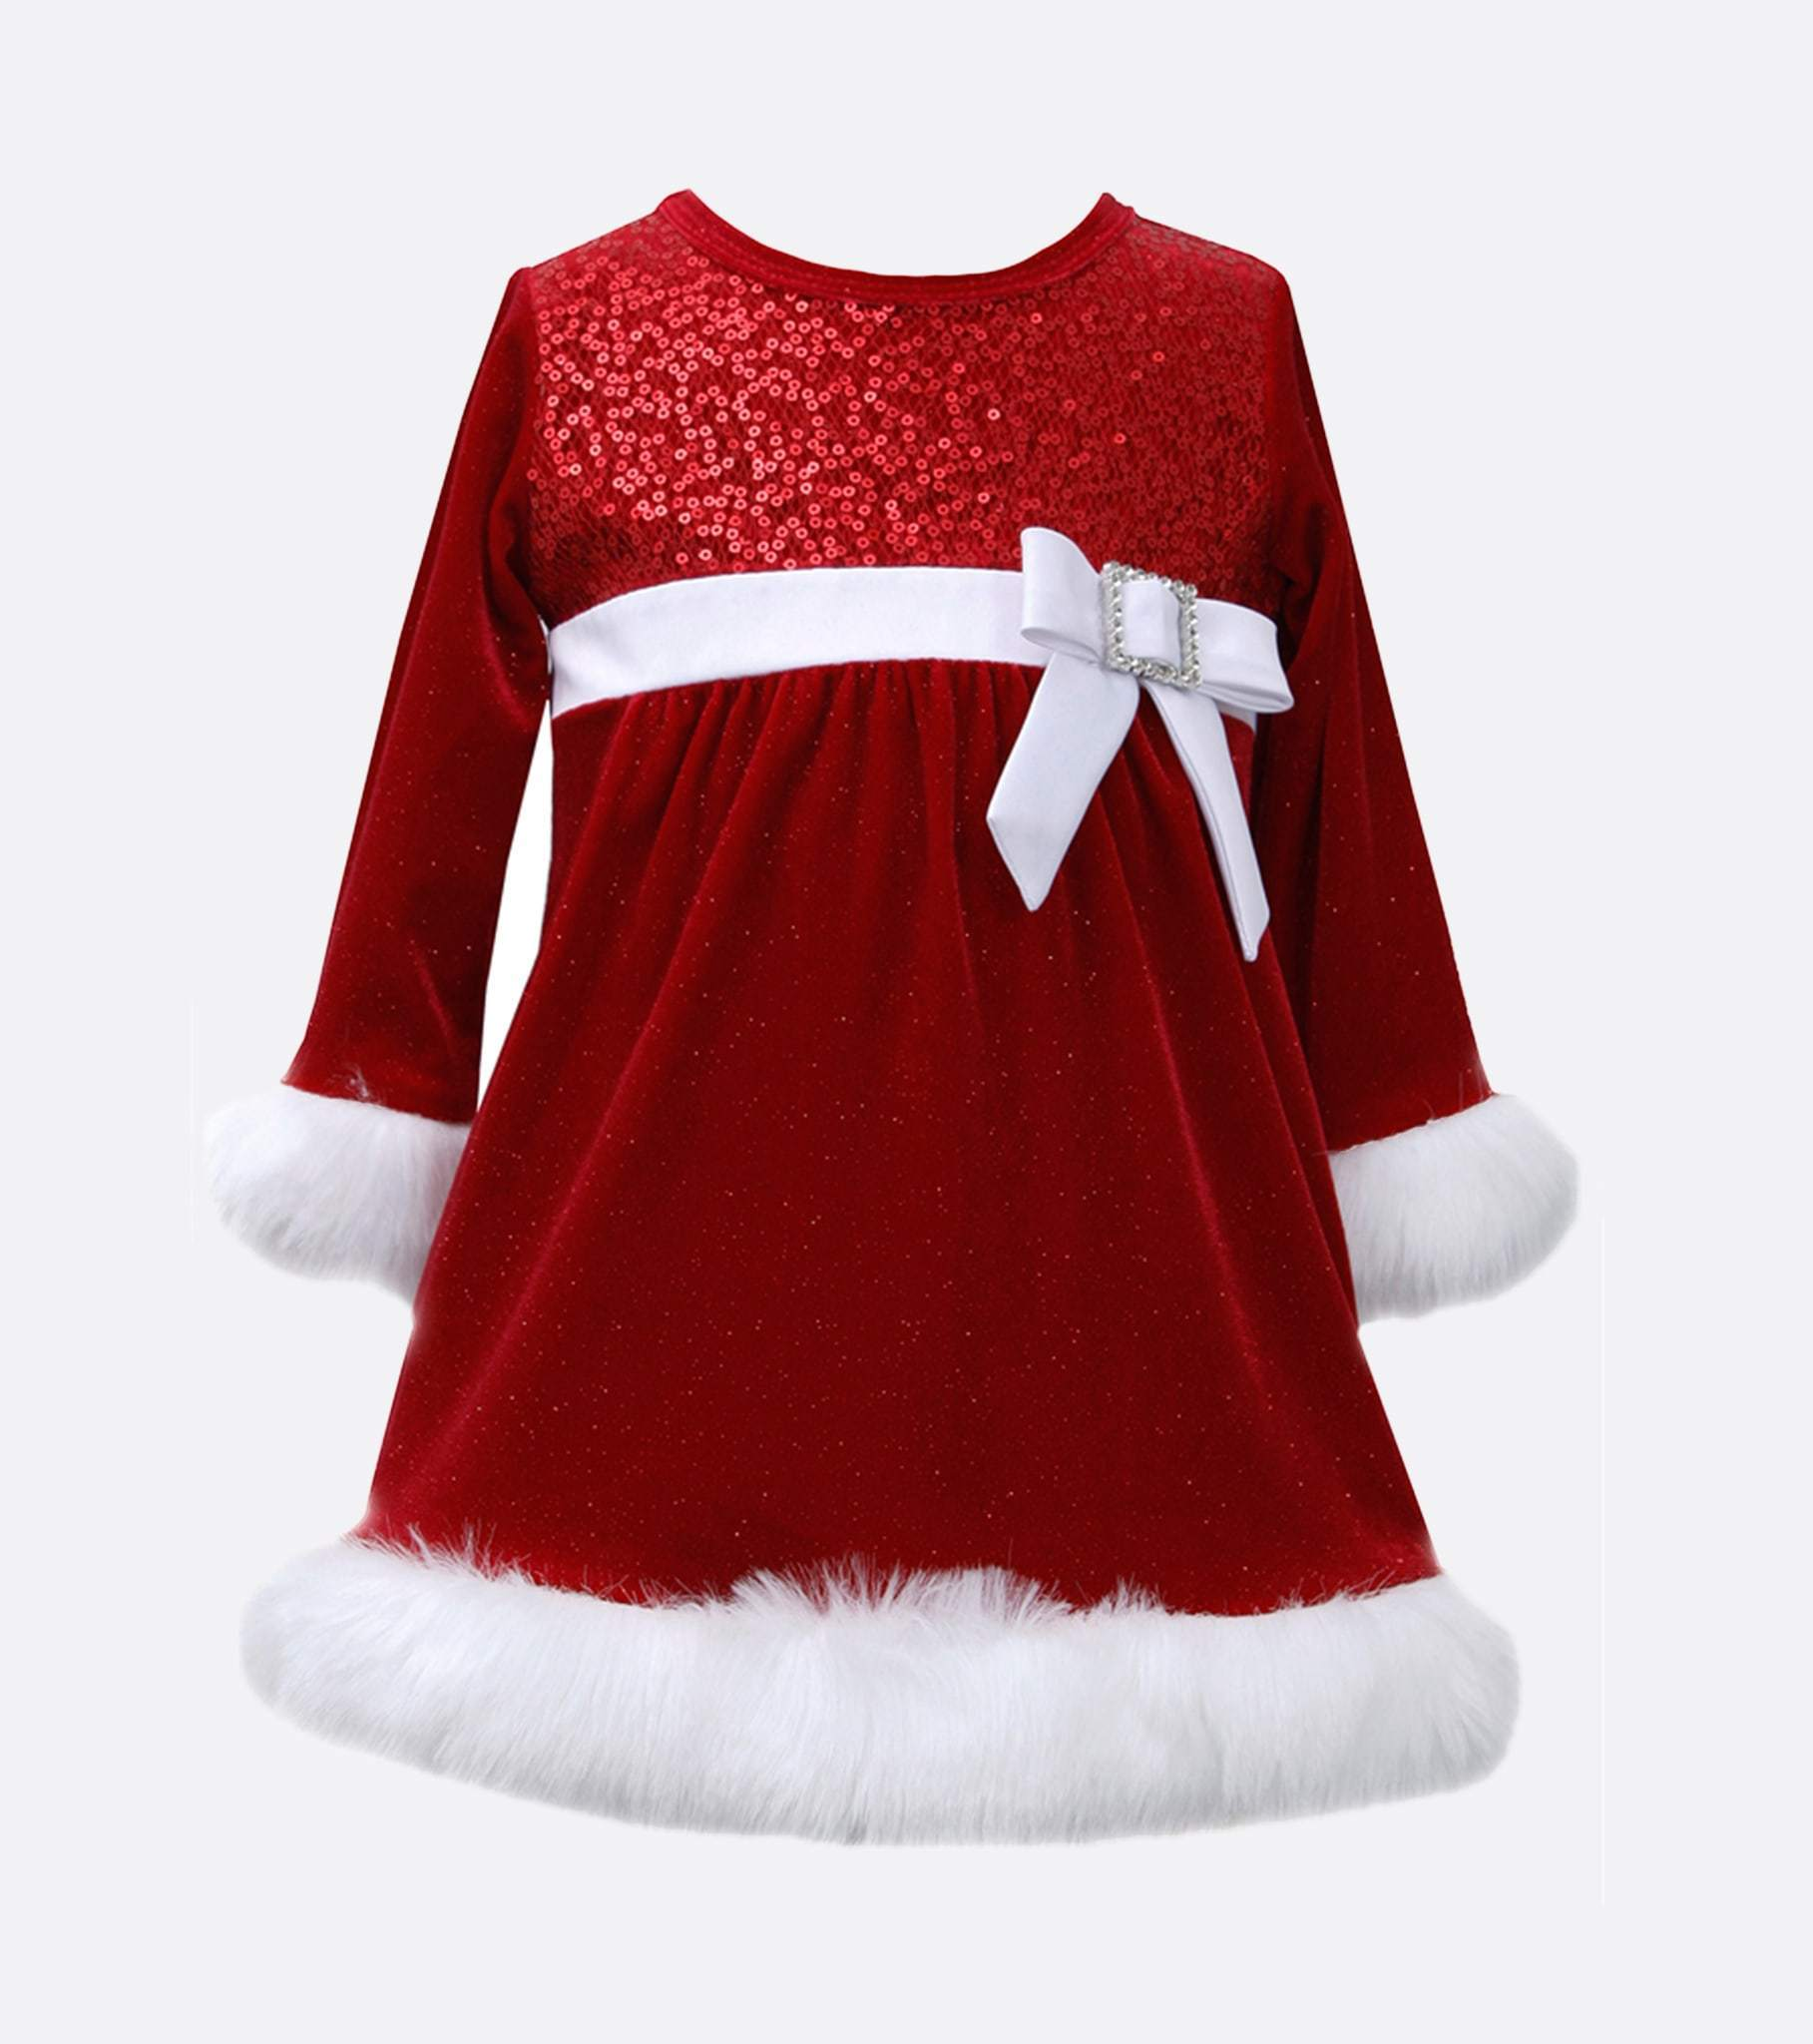 498f7a654 plus size christmas dress, plus size christmas dresses, girls plus size  clothes